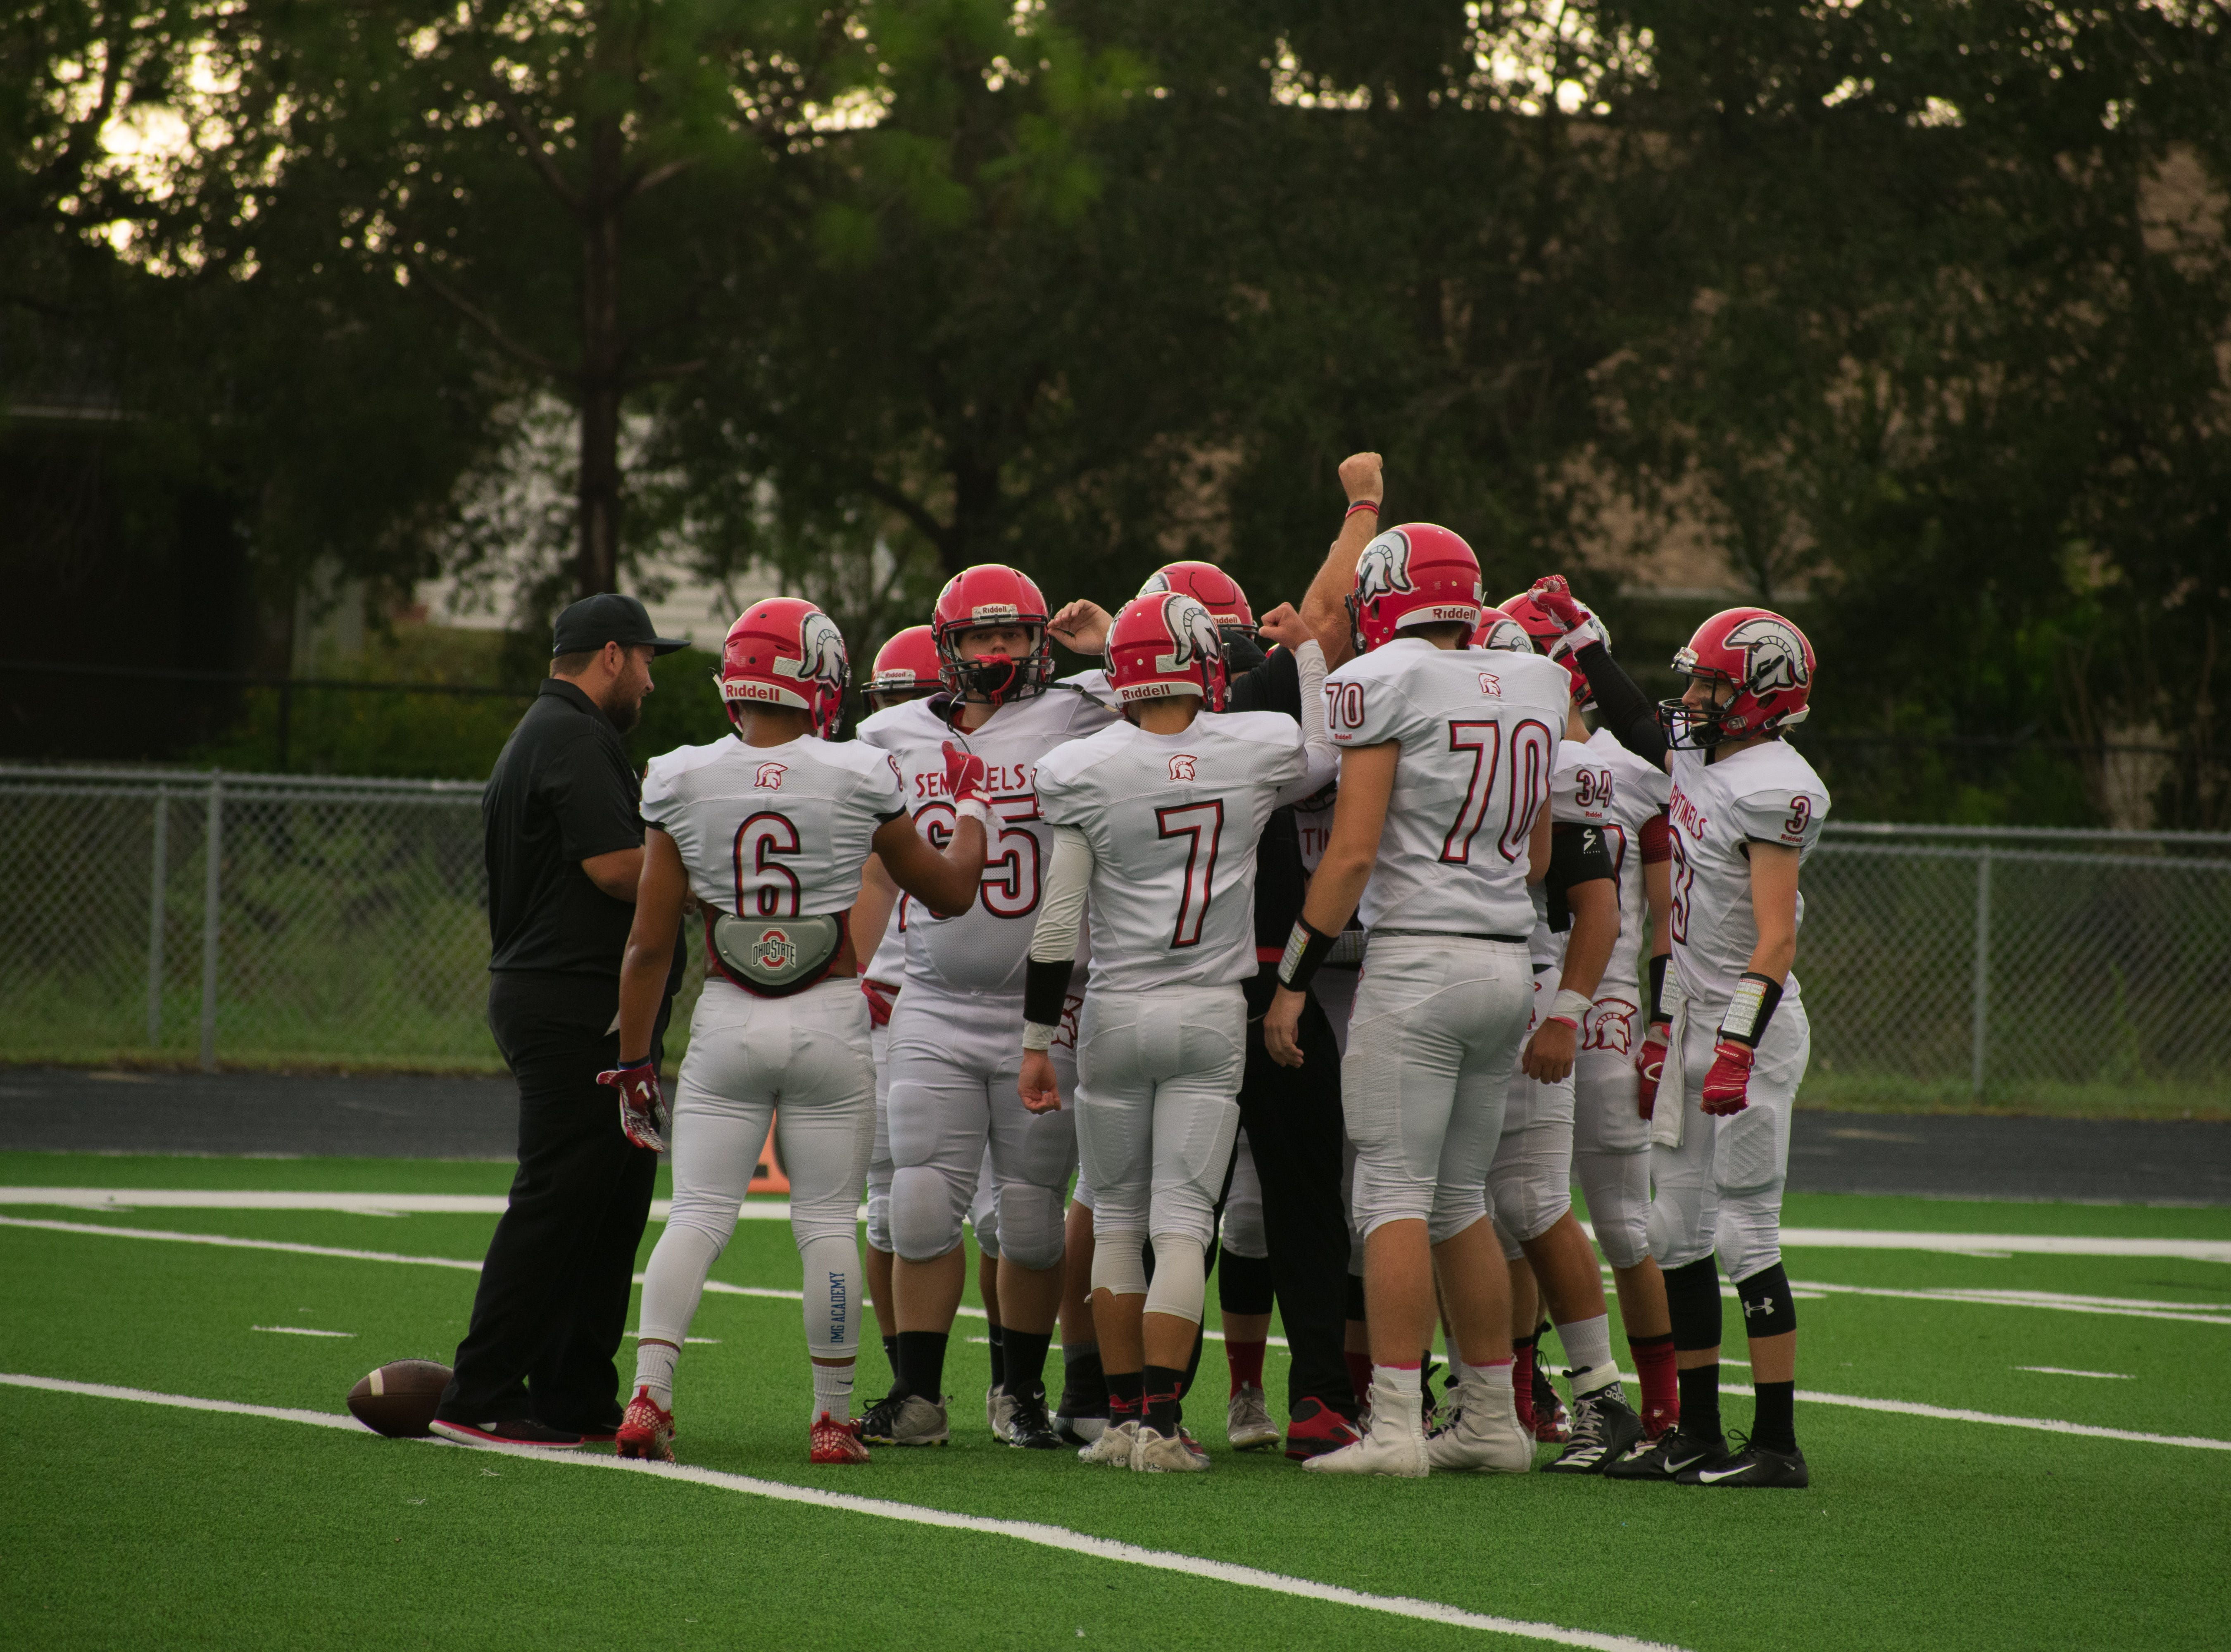 The First Baptist Academy football team defeated Evangelical Christian, 54-14, on Friday, Aug. 24, 2018 after a lengthy lightning delay.